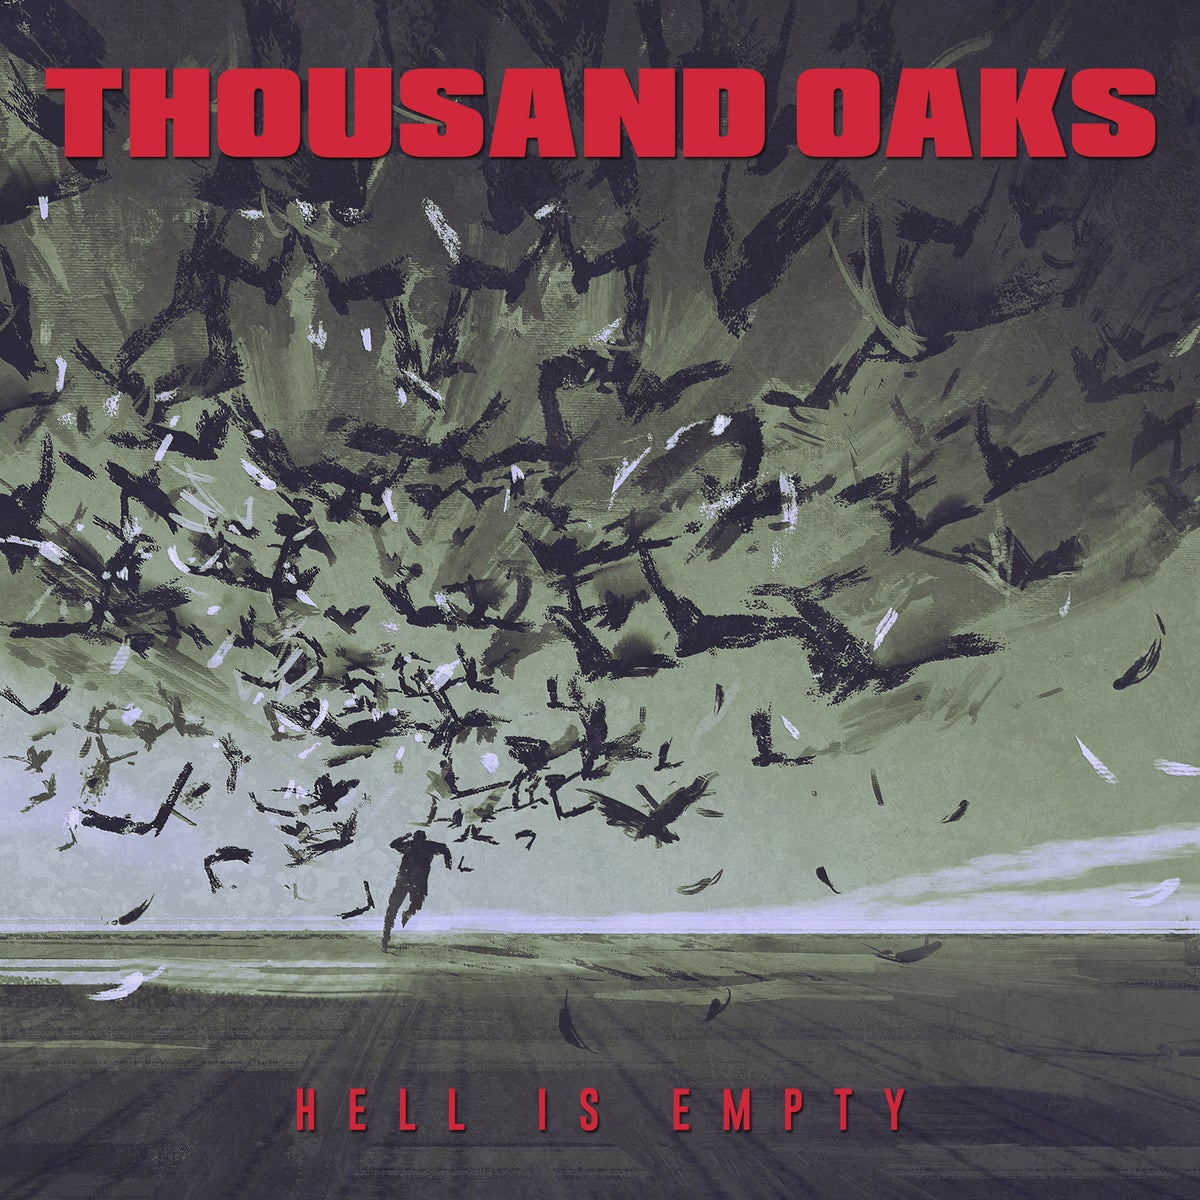 Thousand Oaks - Hell Is Empty (CD Version)